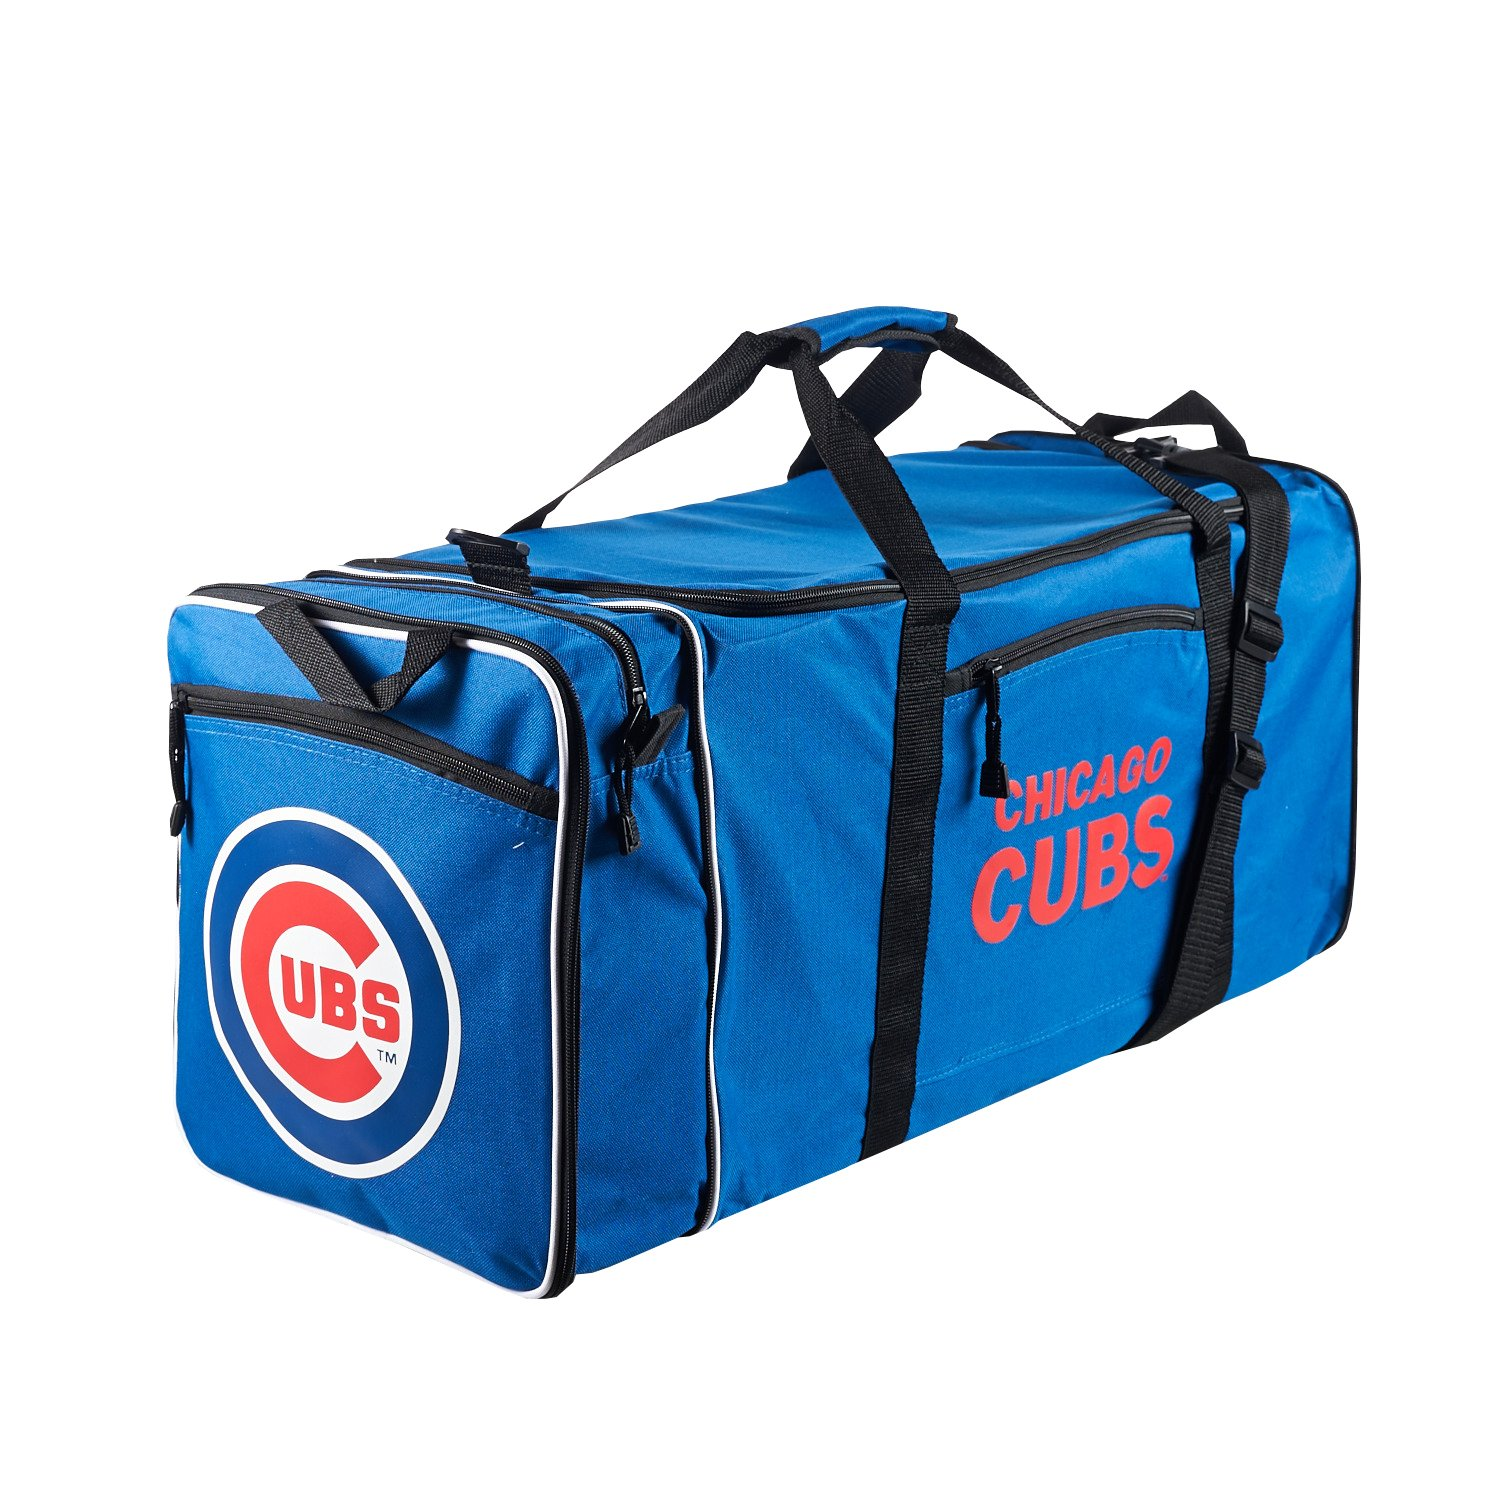 Concept One Accessories Officially Licensed MLB Chicago Cubs Steal Duffel bag, 28'' x 11'' x 12''